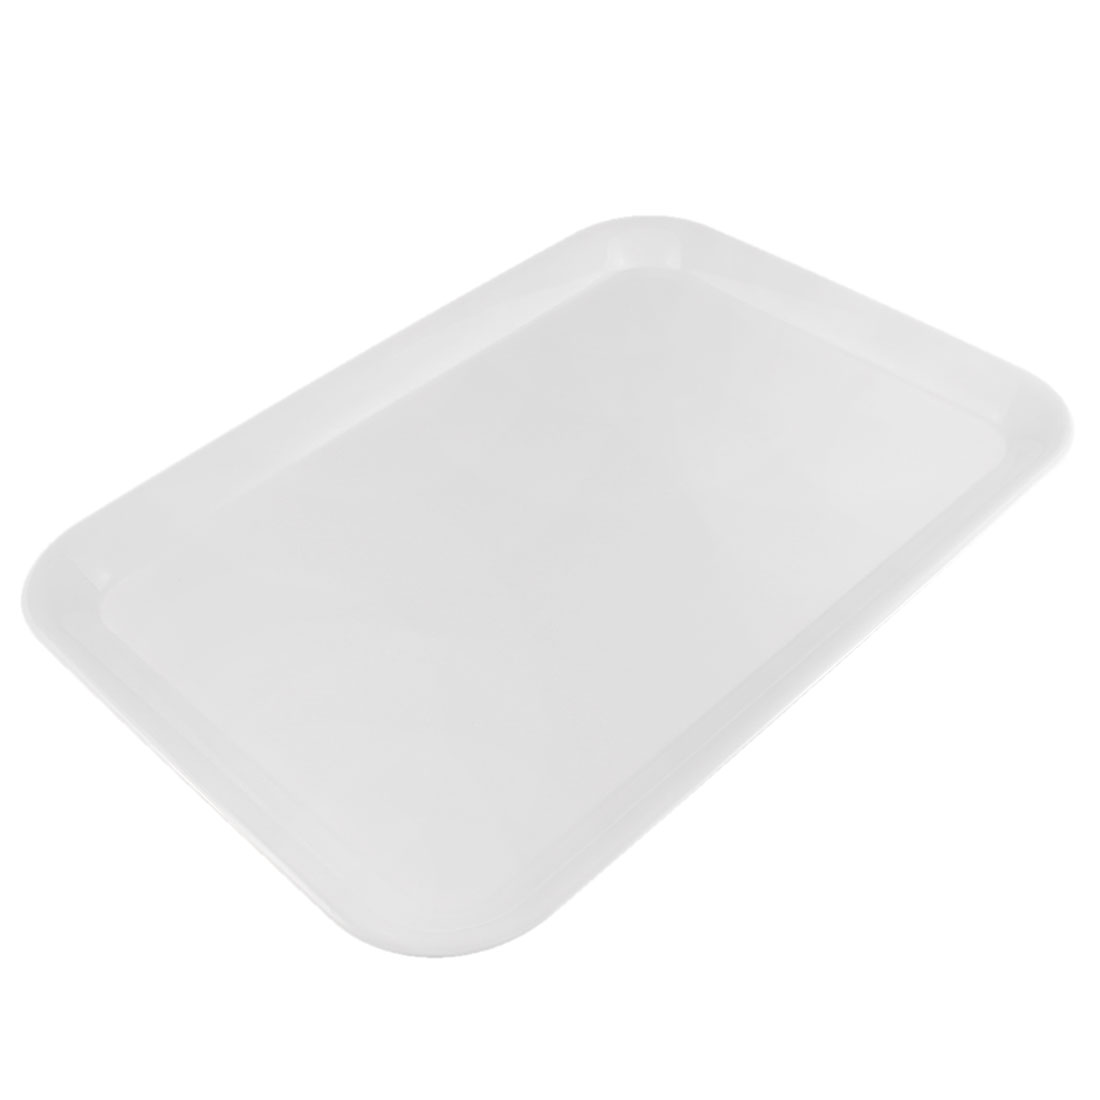 "Restaurant Kitchen Plastic Rectangle Shape Fast Food Serving Tray White 17"" Length"